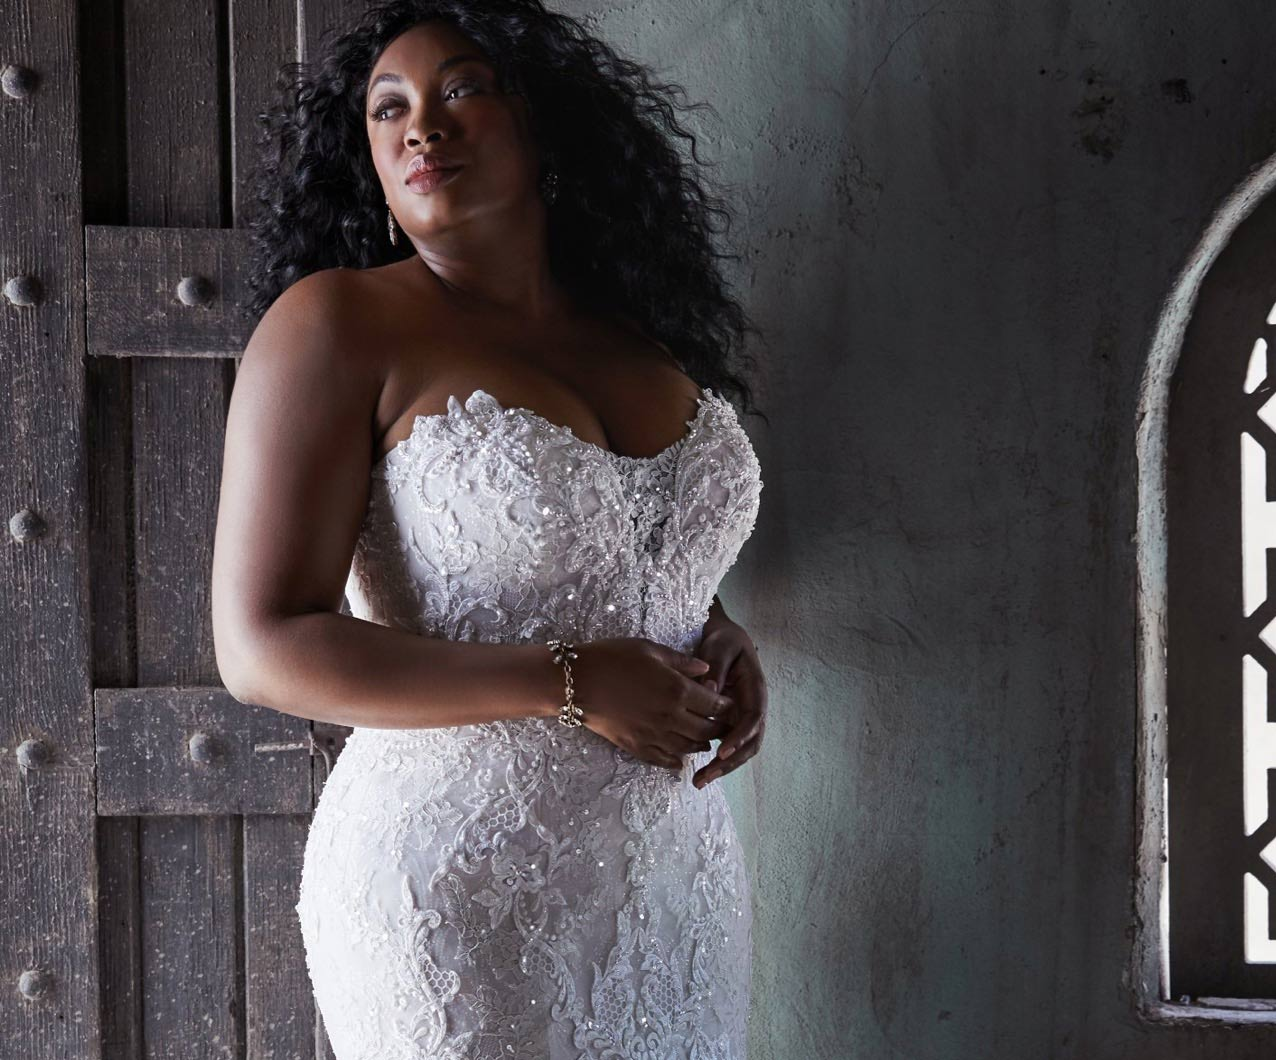 Plus size model wearing a white gown